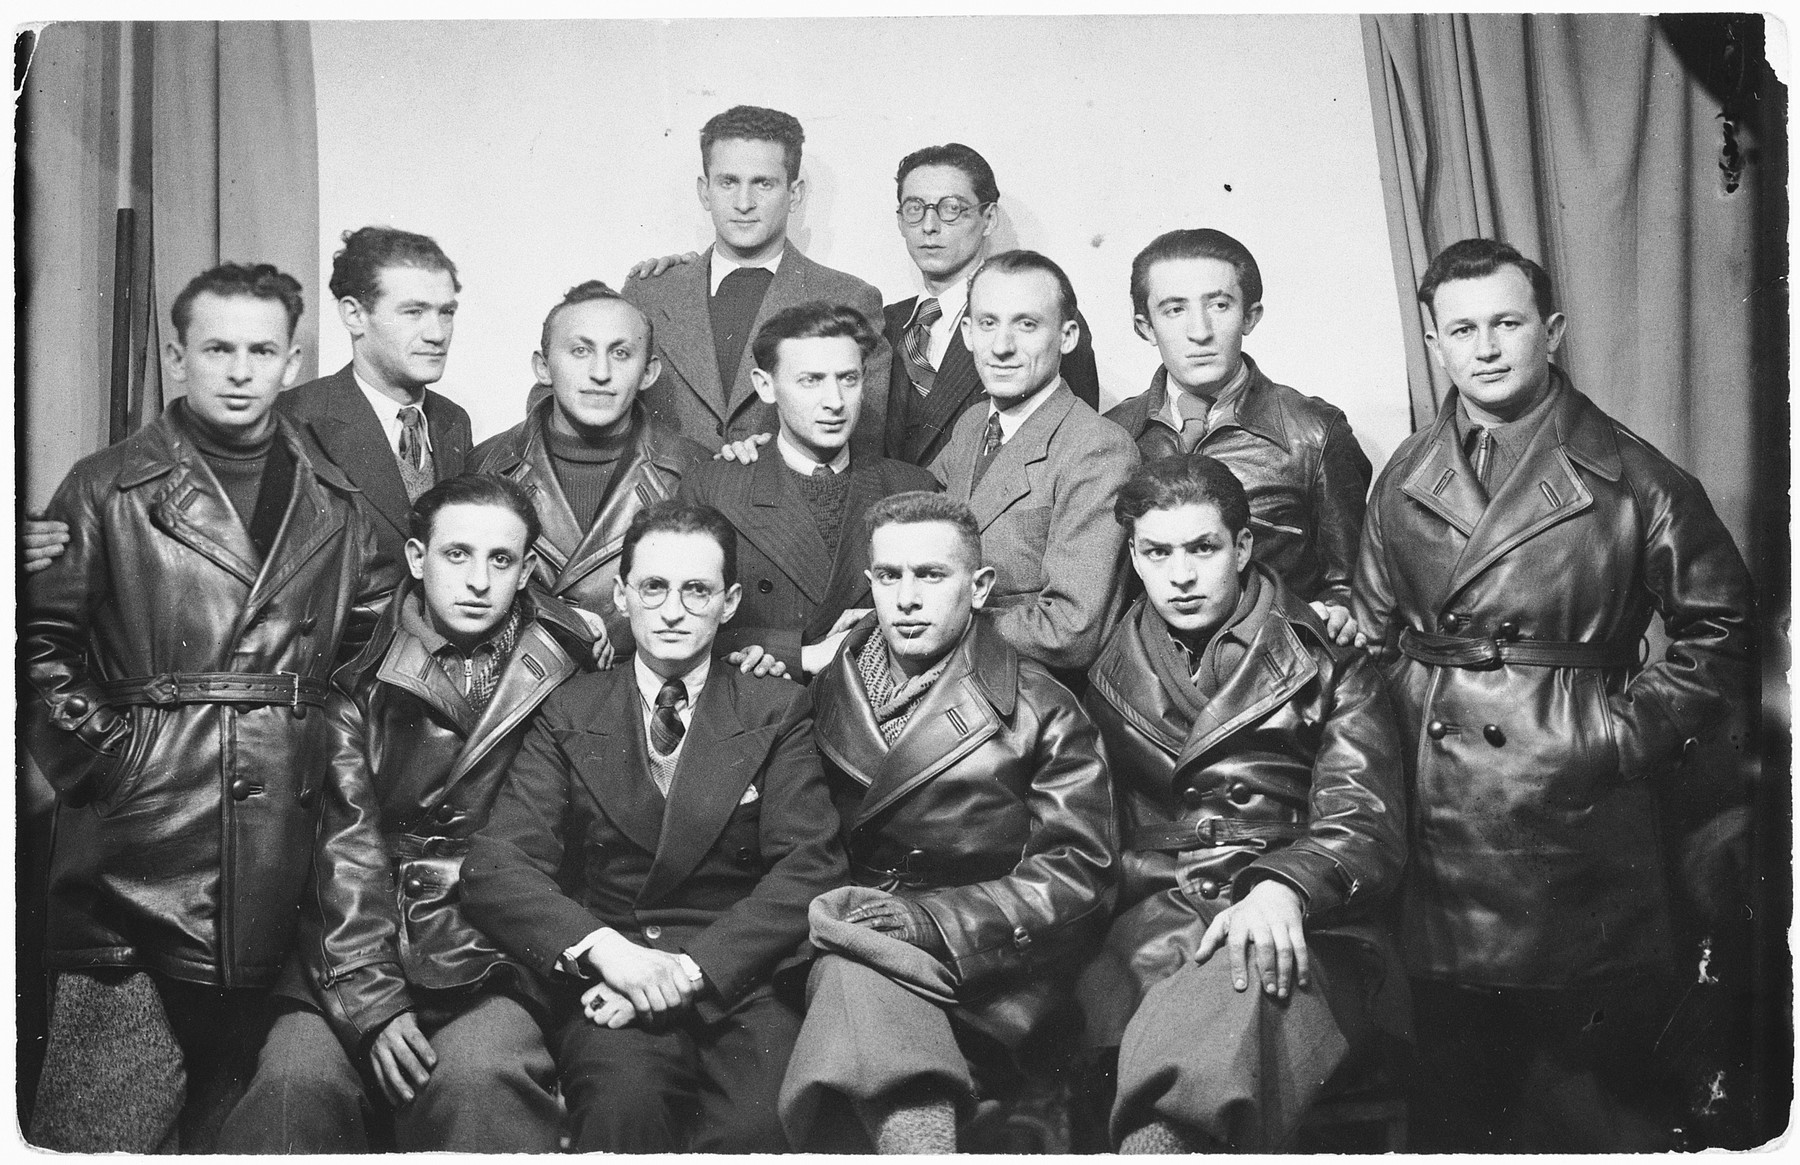 Members of Poale Zion who volunteered to fight in the Spanish Civil War. Not all ended up going to Spain.  Among those pictured  (first row, left to right) are Roman, David Frydman, Rotholz, and unidentified.  Middle row: Lipskind, Weintraub, Rassner, Szmulek Zalcman, Kalman Aronowitz, and unidentified.  Back row: Koifman and Paul Drokurt.  David Frydman later became a member of the Central Committee for the Defense of the Jews in France.